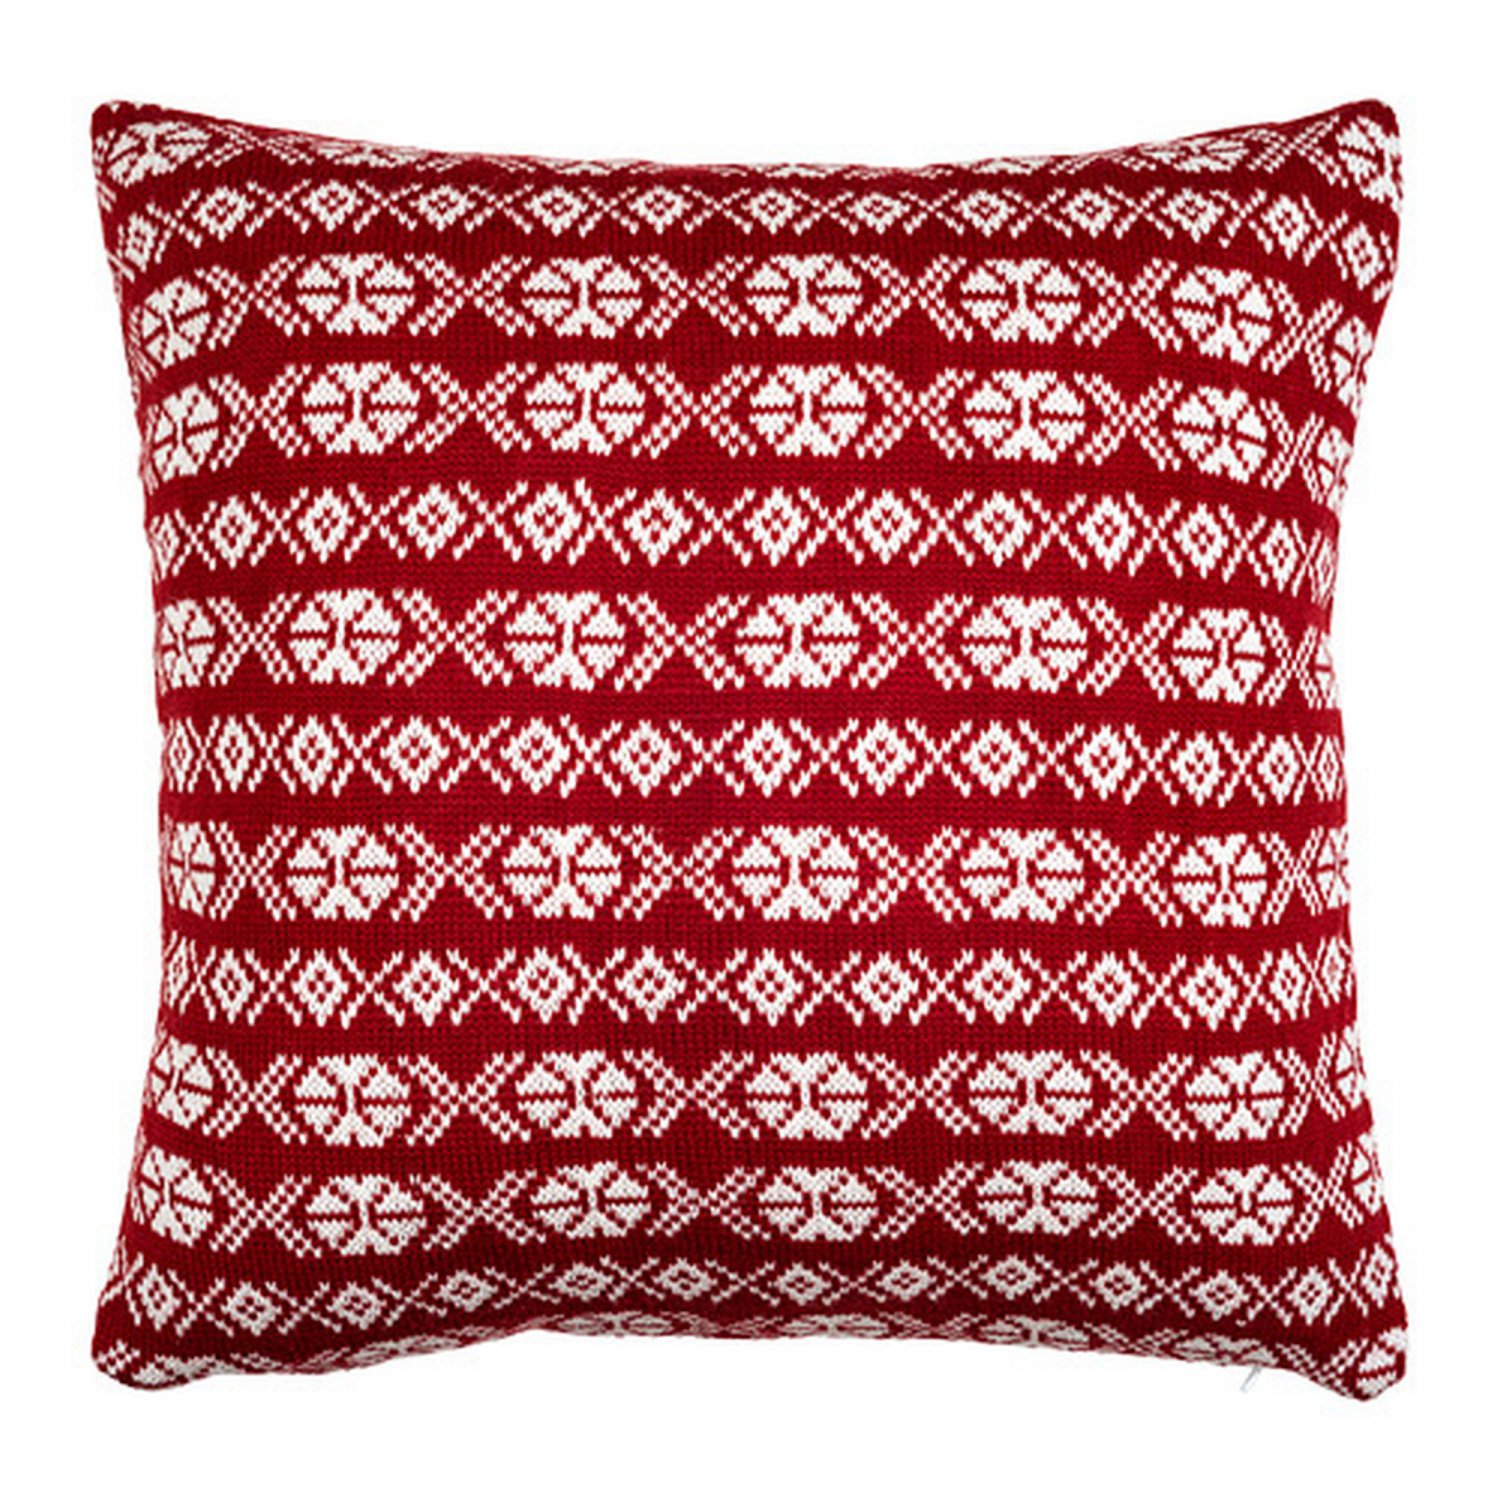 Ikea antilopoga cushion cover pillow sham red white 20quot x for Ikea uk cushion covers